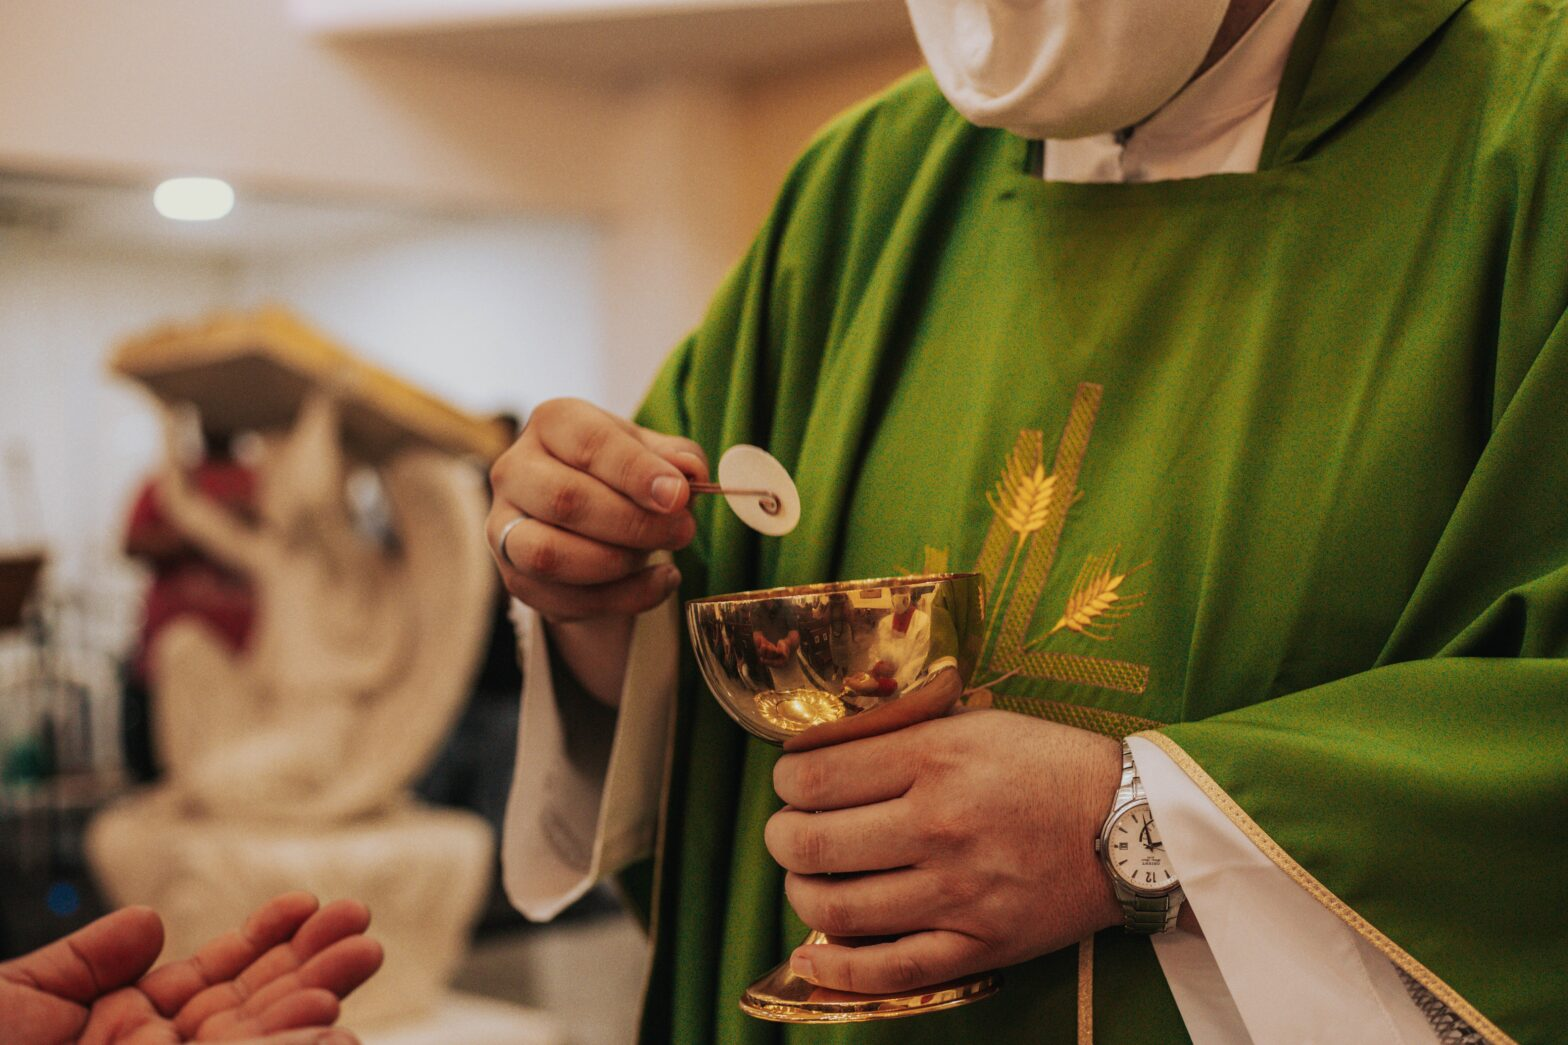 A Family Guide to Closing Out the Summer in Catholic Faith and Peace